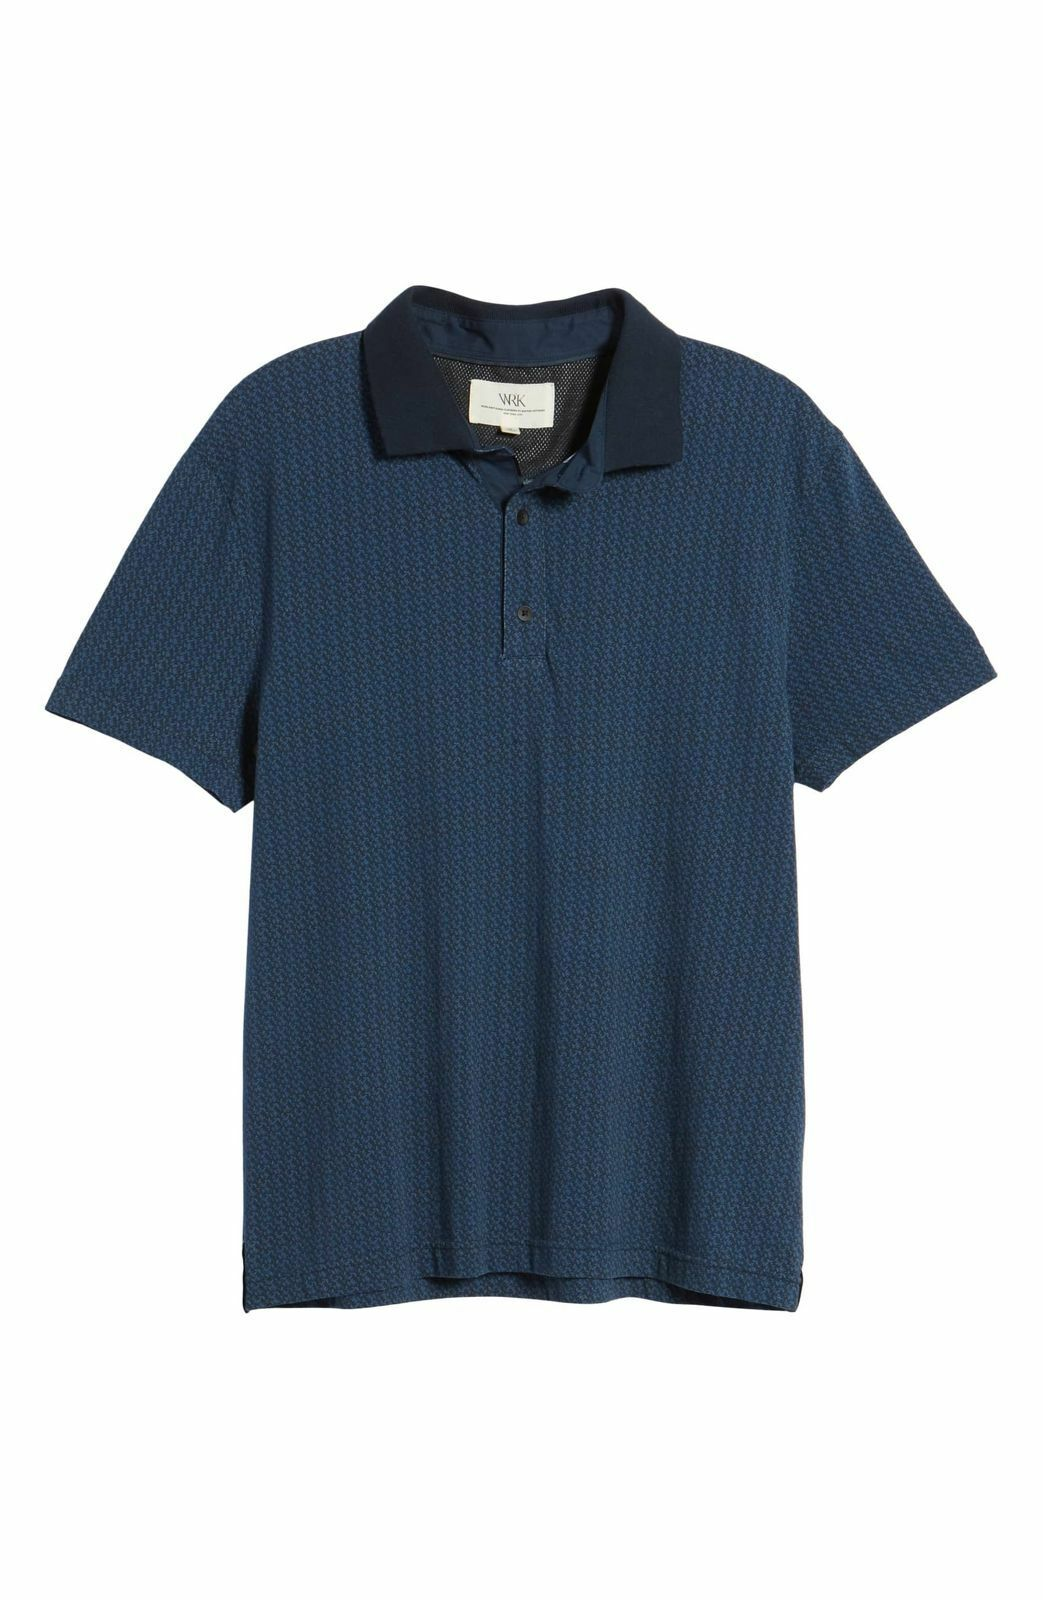 aee5f861 WRK Men's SLIM-FIT SHORT SLEEVE BUTTON TOP POLO CASUAL SHIRT XL FLORAL  blueE nstwgg4736-Casual Shirts & Tops